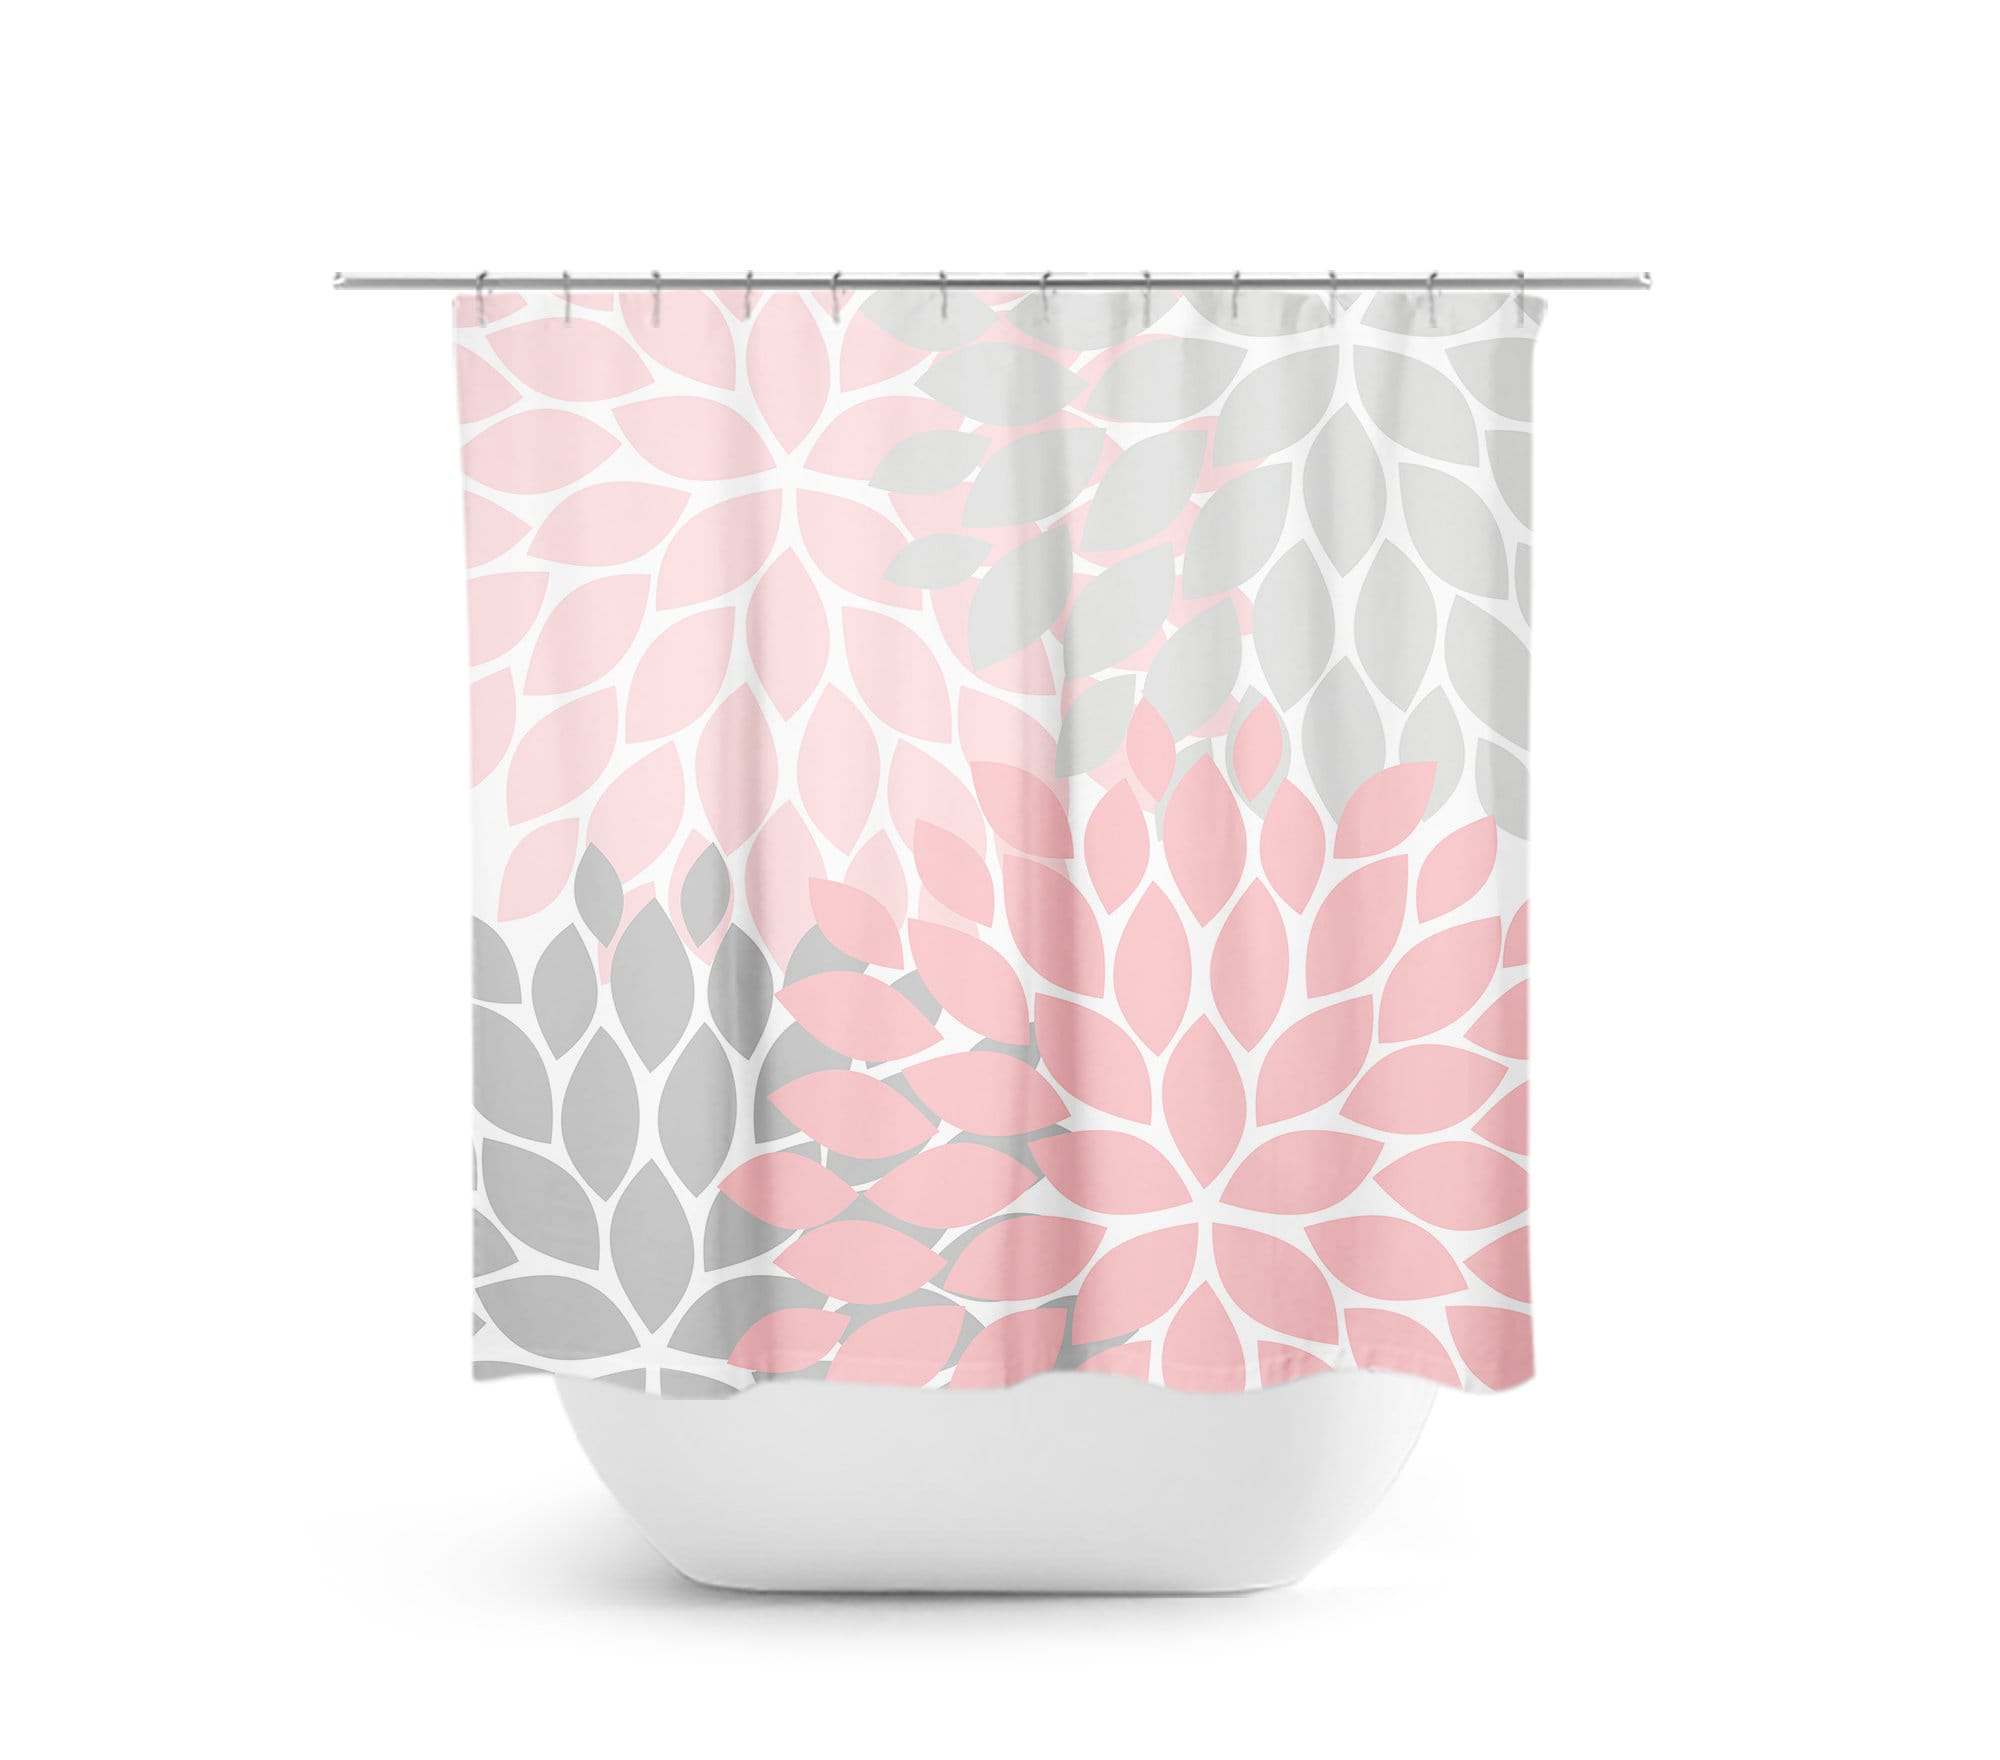 Pink And Gray Shower Curtain Floral Art Bathroom Decor Shabby Chic